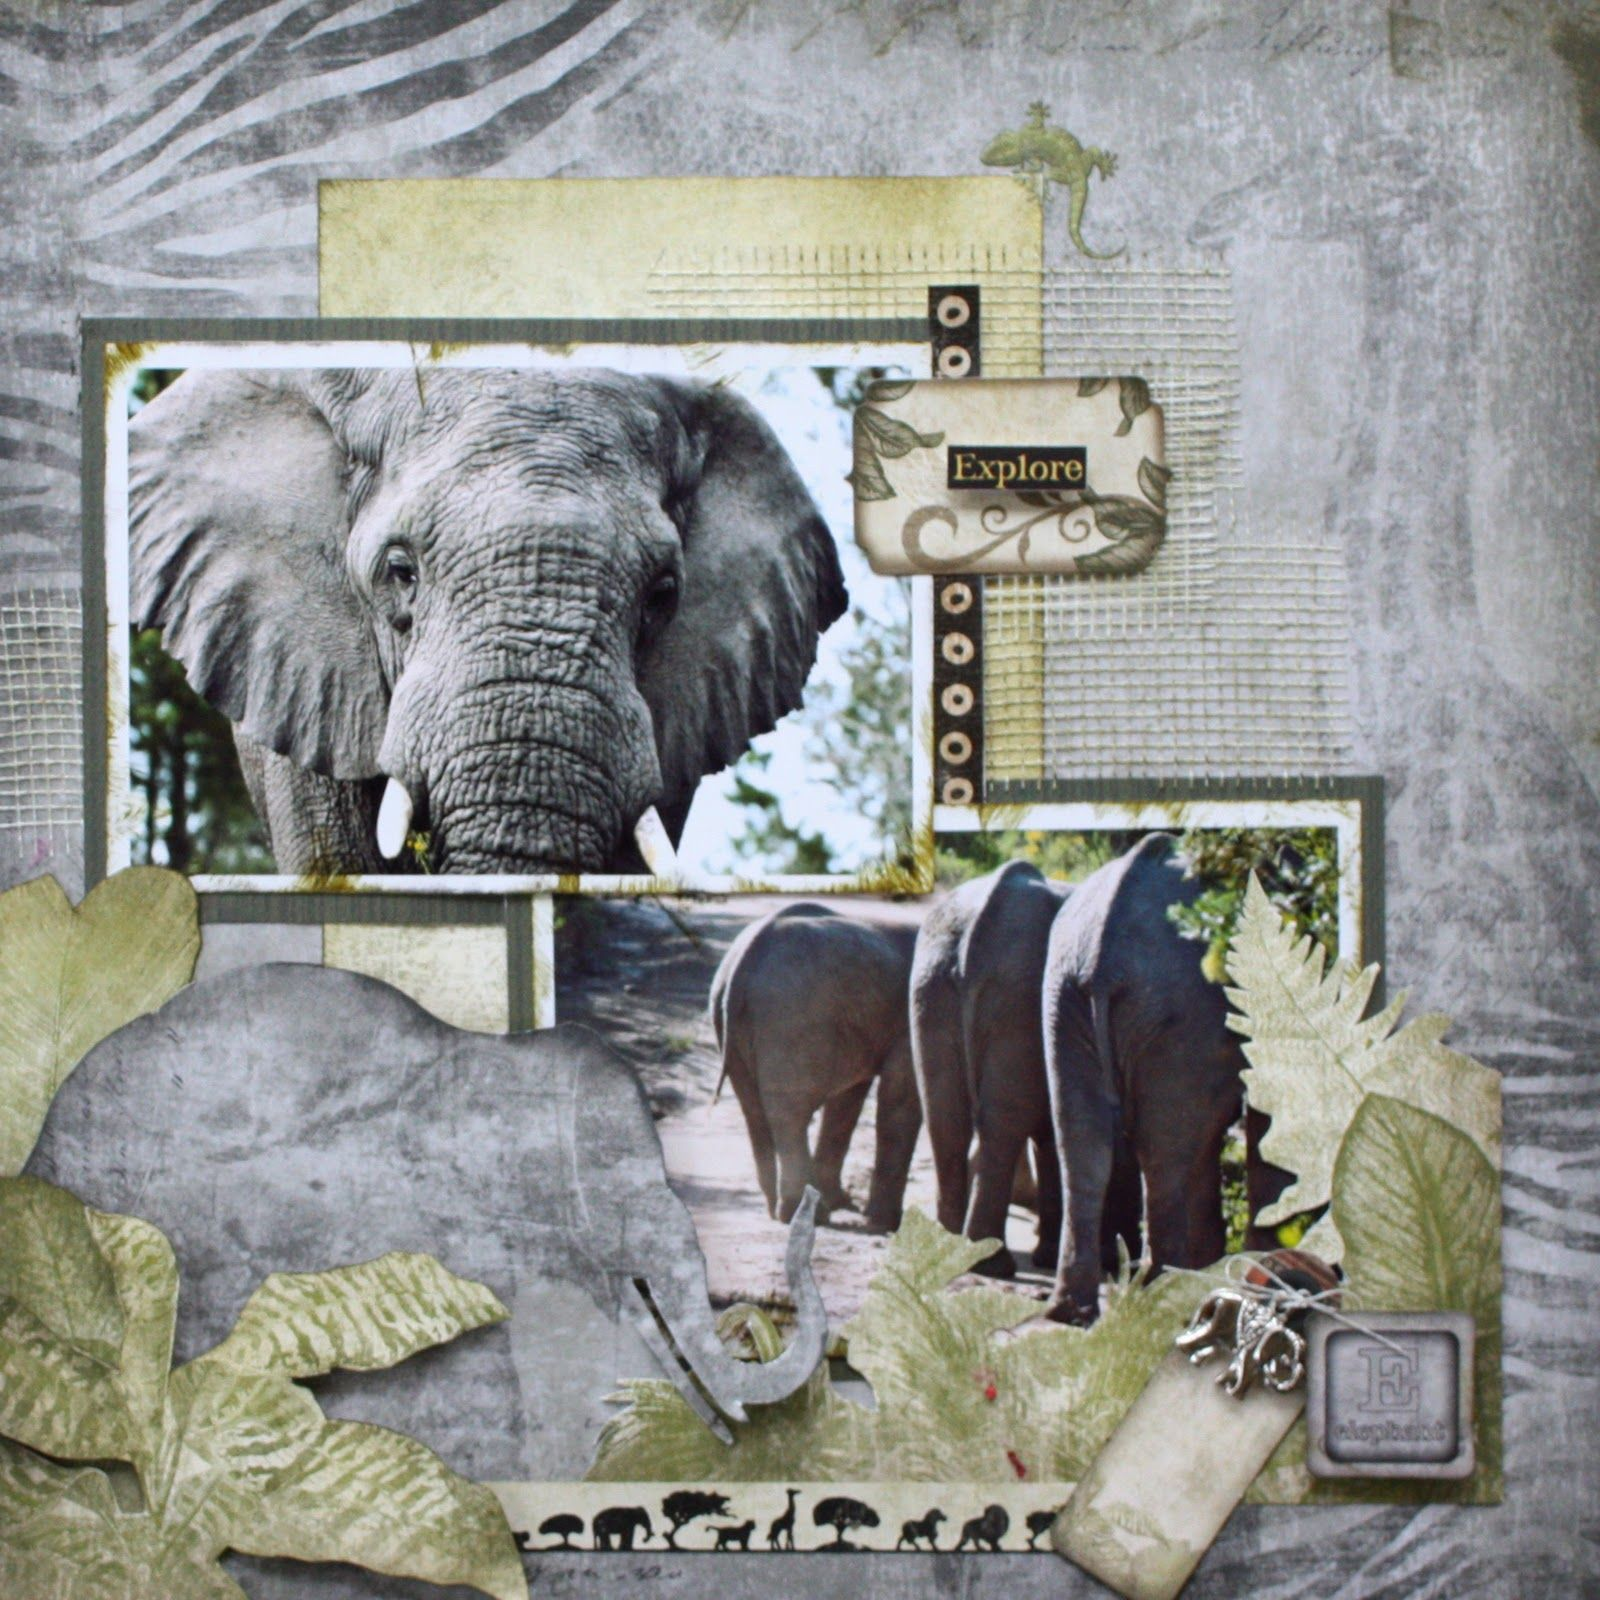 Zoo animal scrapbook ideas - 78 Best Images About Scrapbook Layout Zoo On Pinterest Zoos Vienna And The Zoo